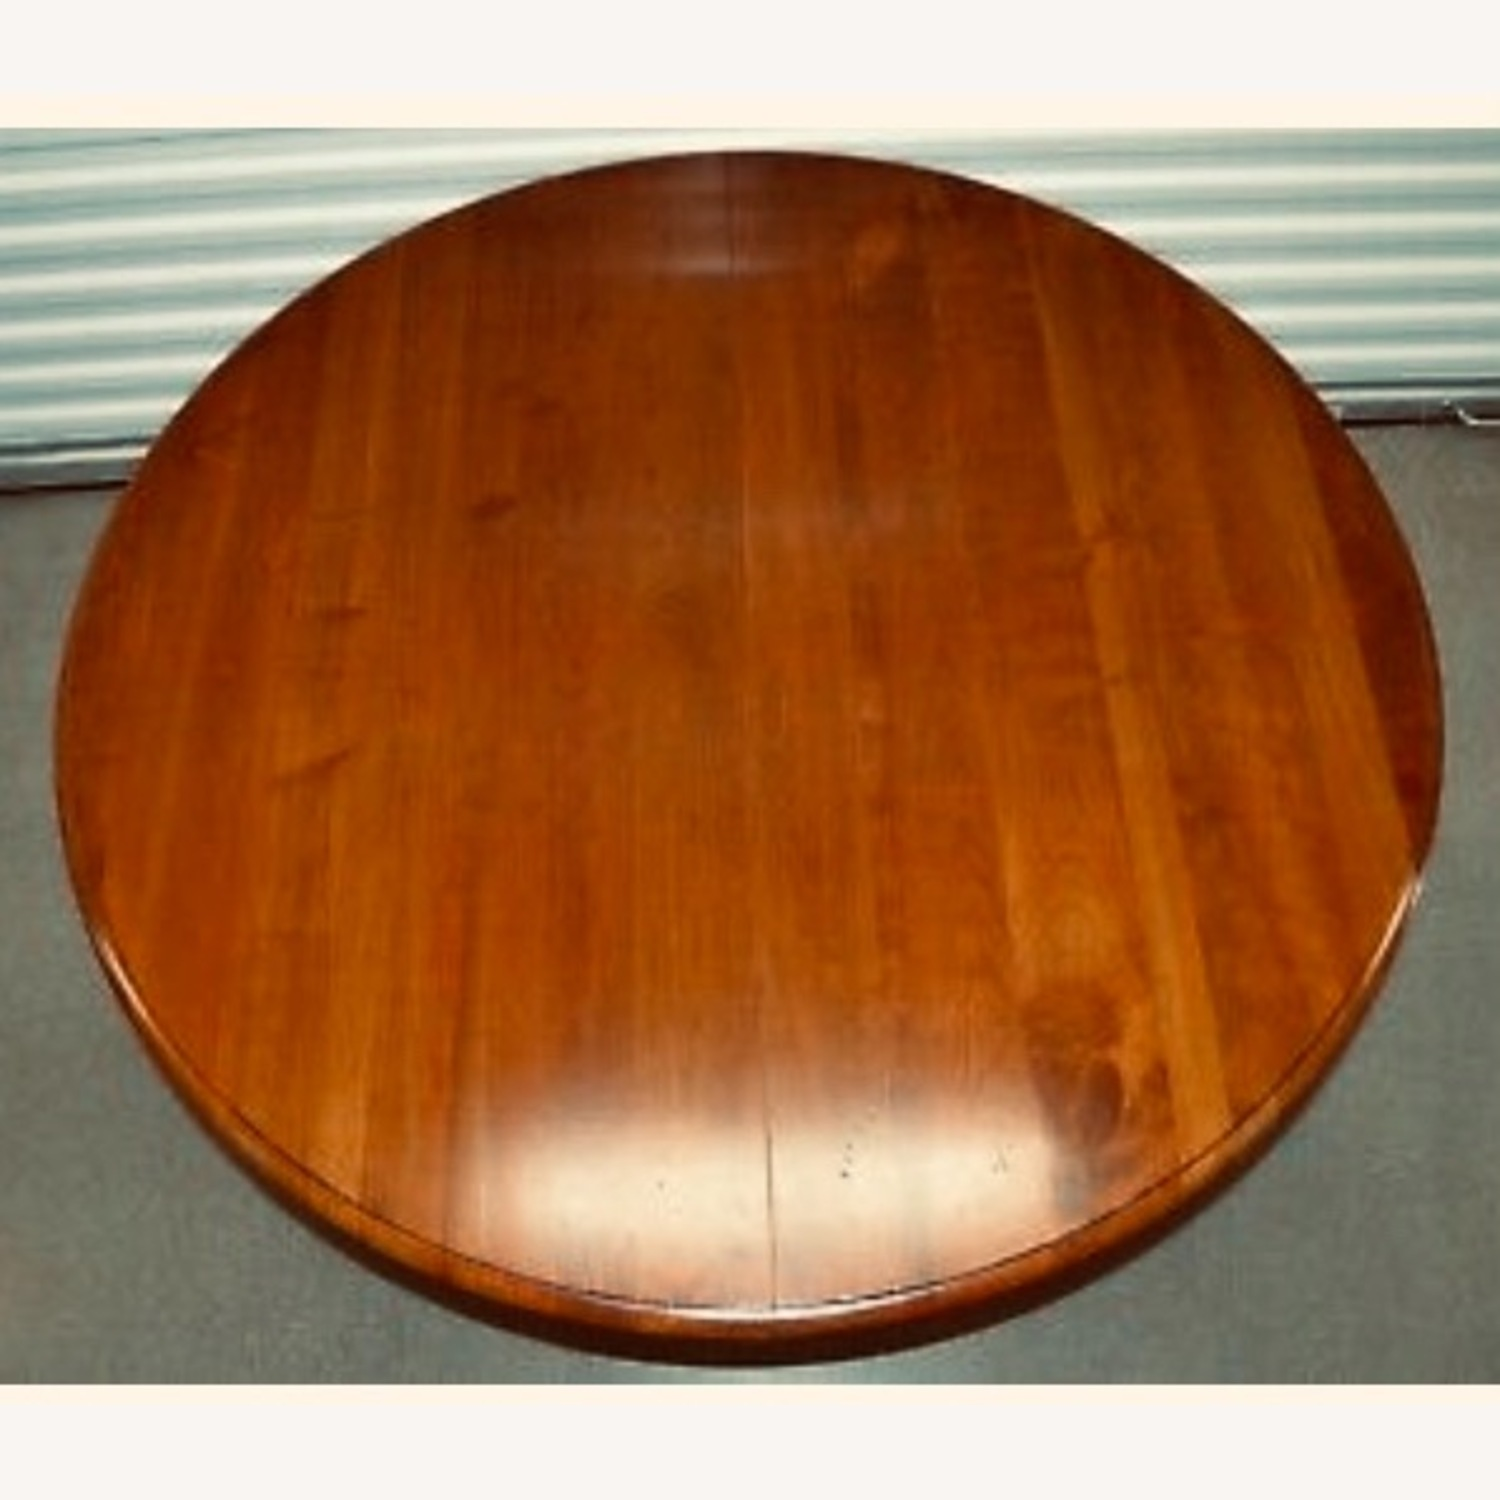 Ethan Allen Maisen Dining Table - image-3